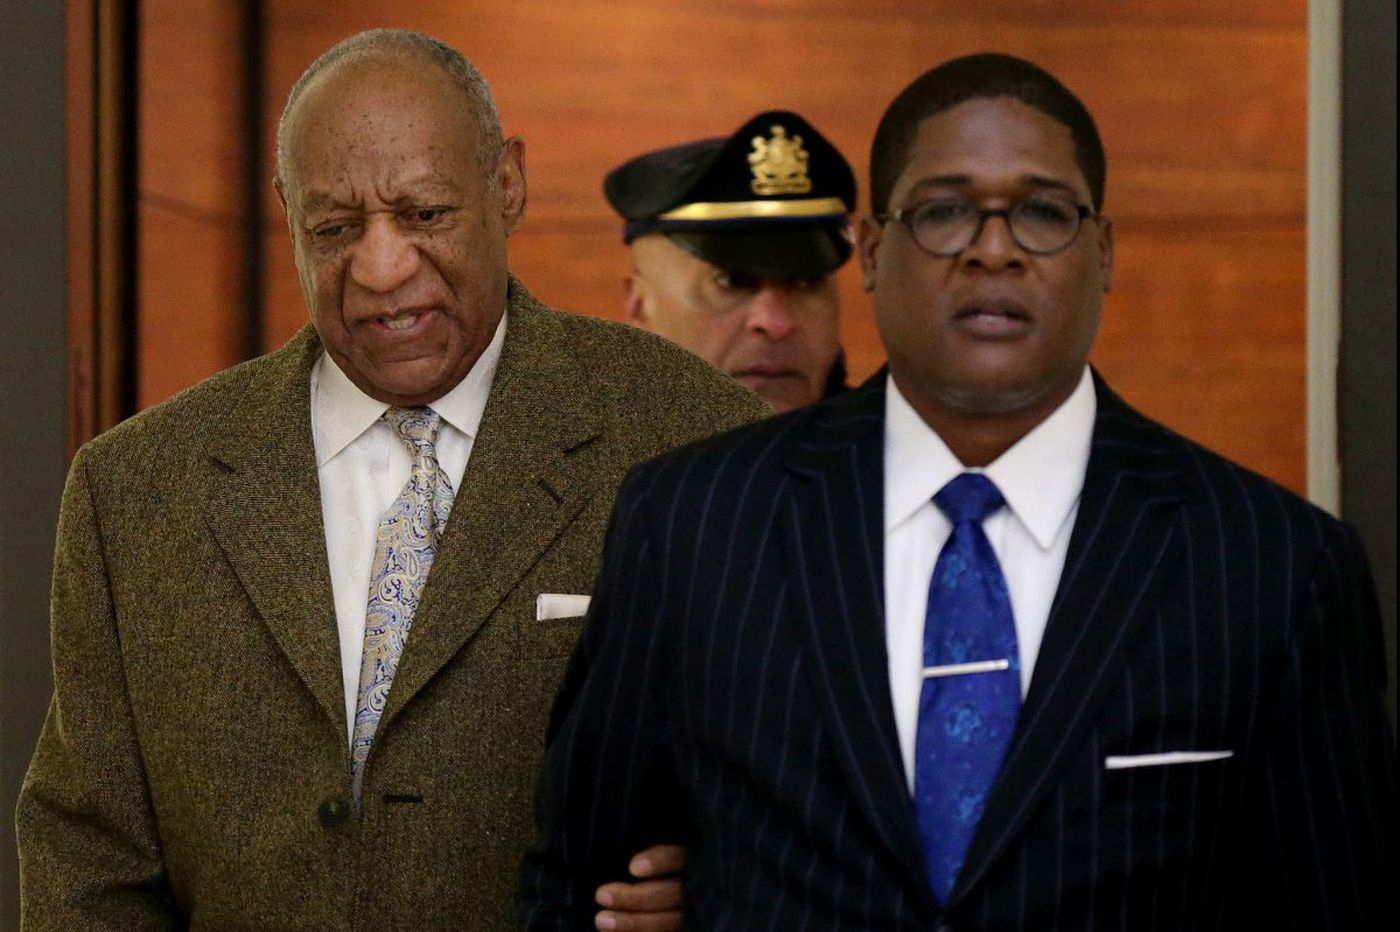 Amid #MeToo era, Bill Cosby returns to Norristown for pivotal hearing